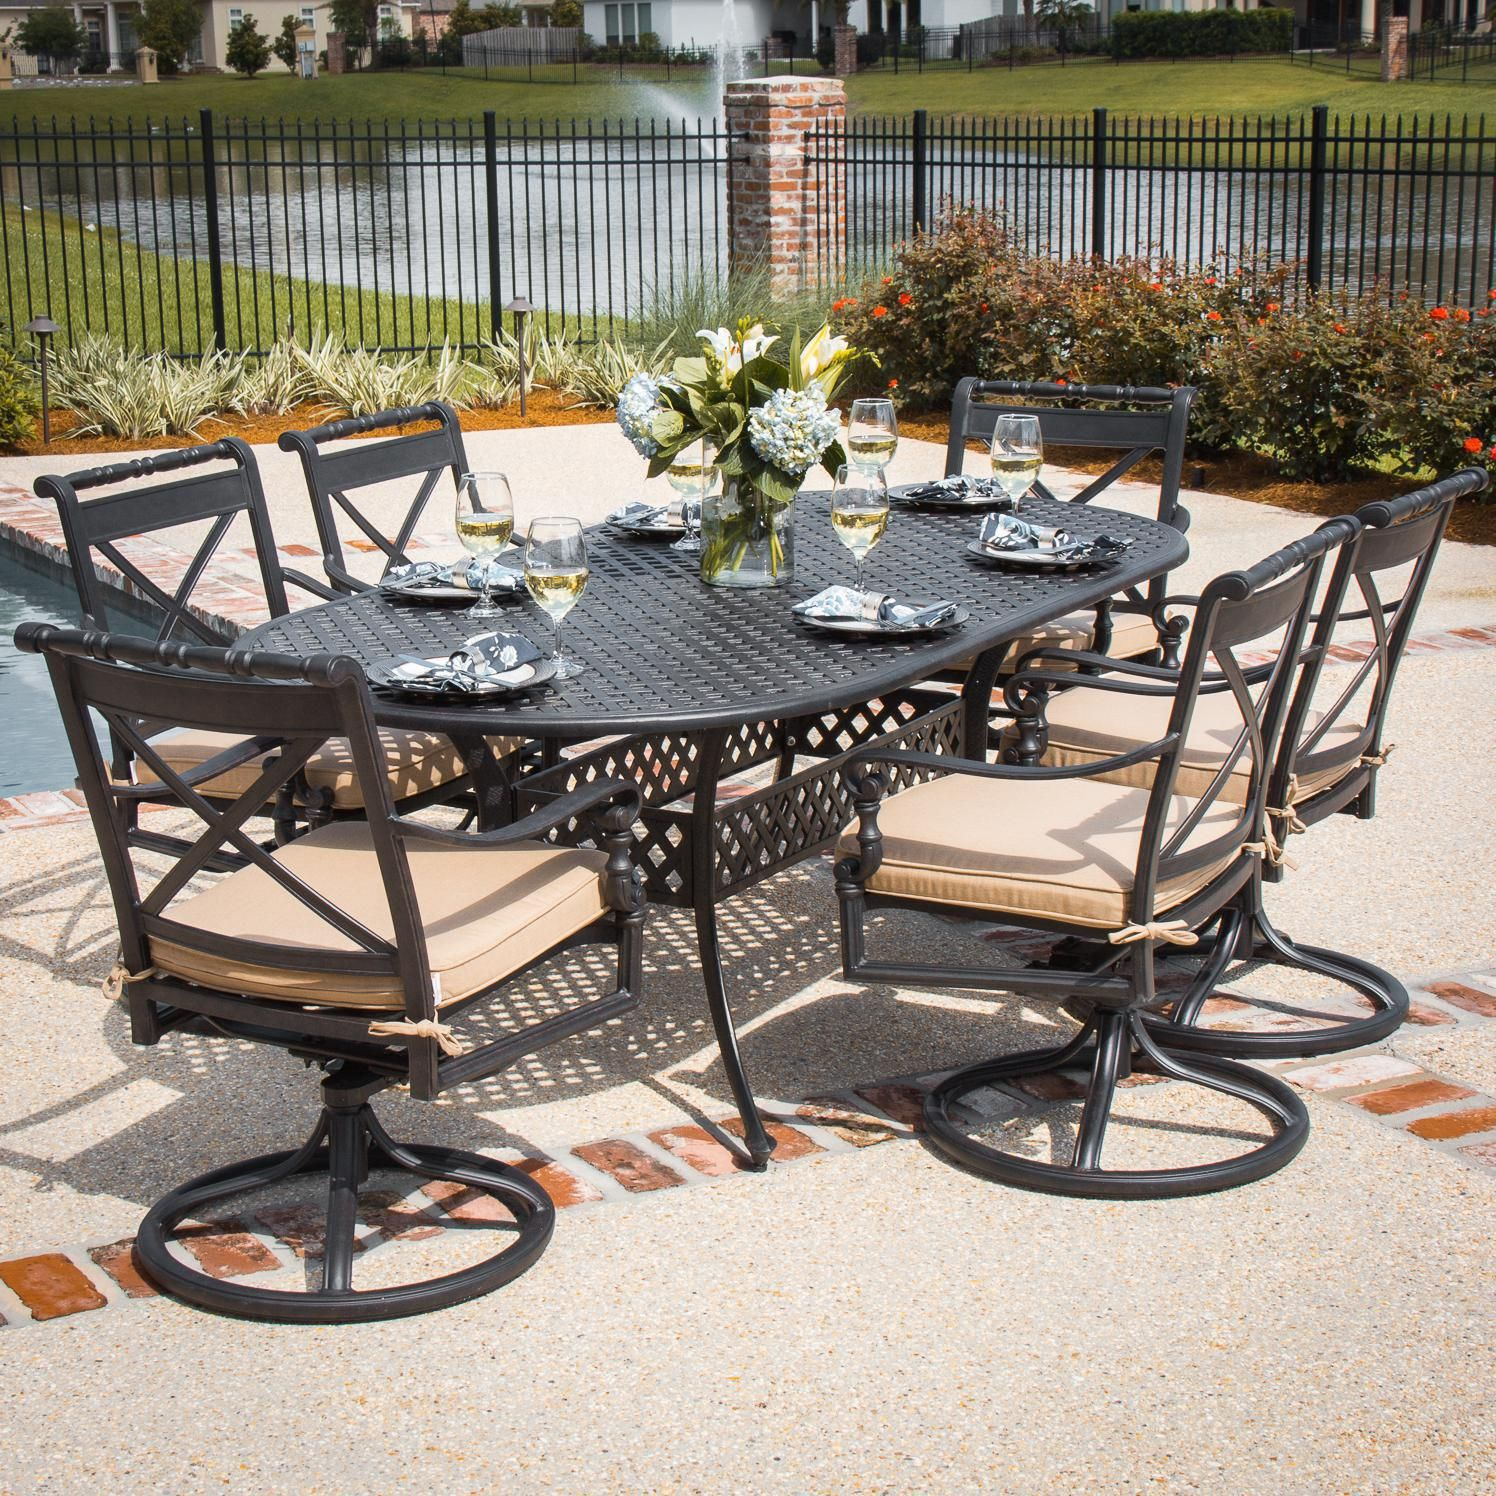 Carrolton 7 Piece Cast Aluminum Patio Dining Set With Swivel Rockers Oval Table By Lakeview Outdoor Designs Canvas Antique Beige Bbqguys Patio Dining Set Patio Outdoor Design Cast aluminum outdoor dining set